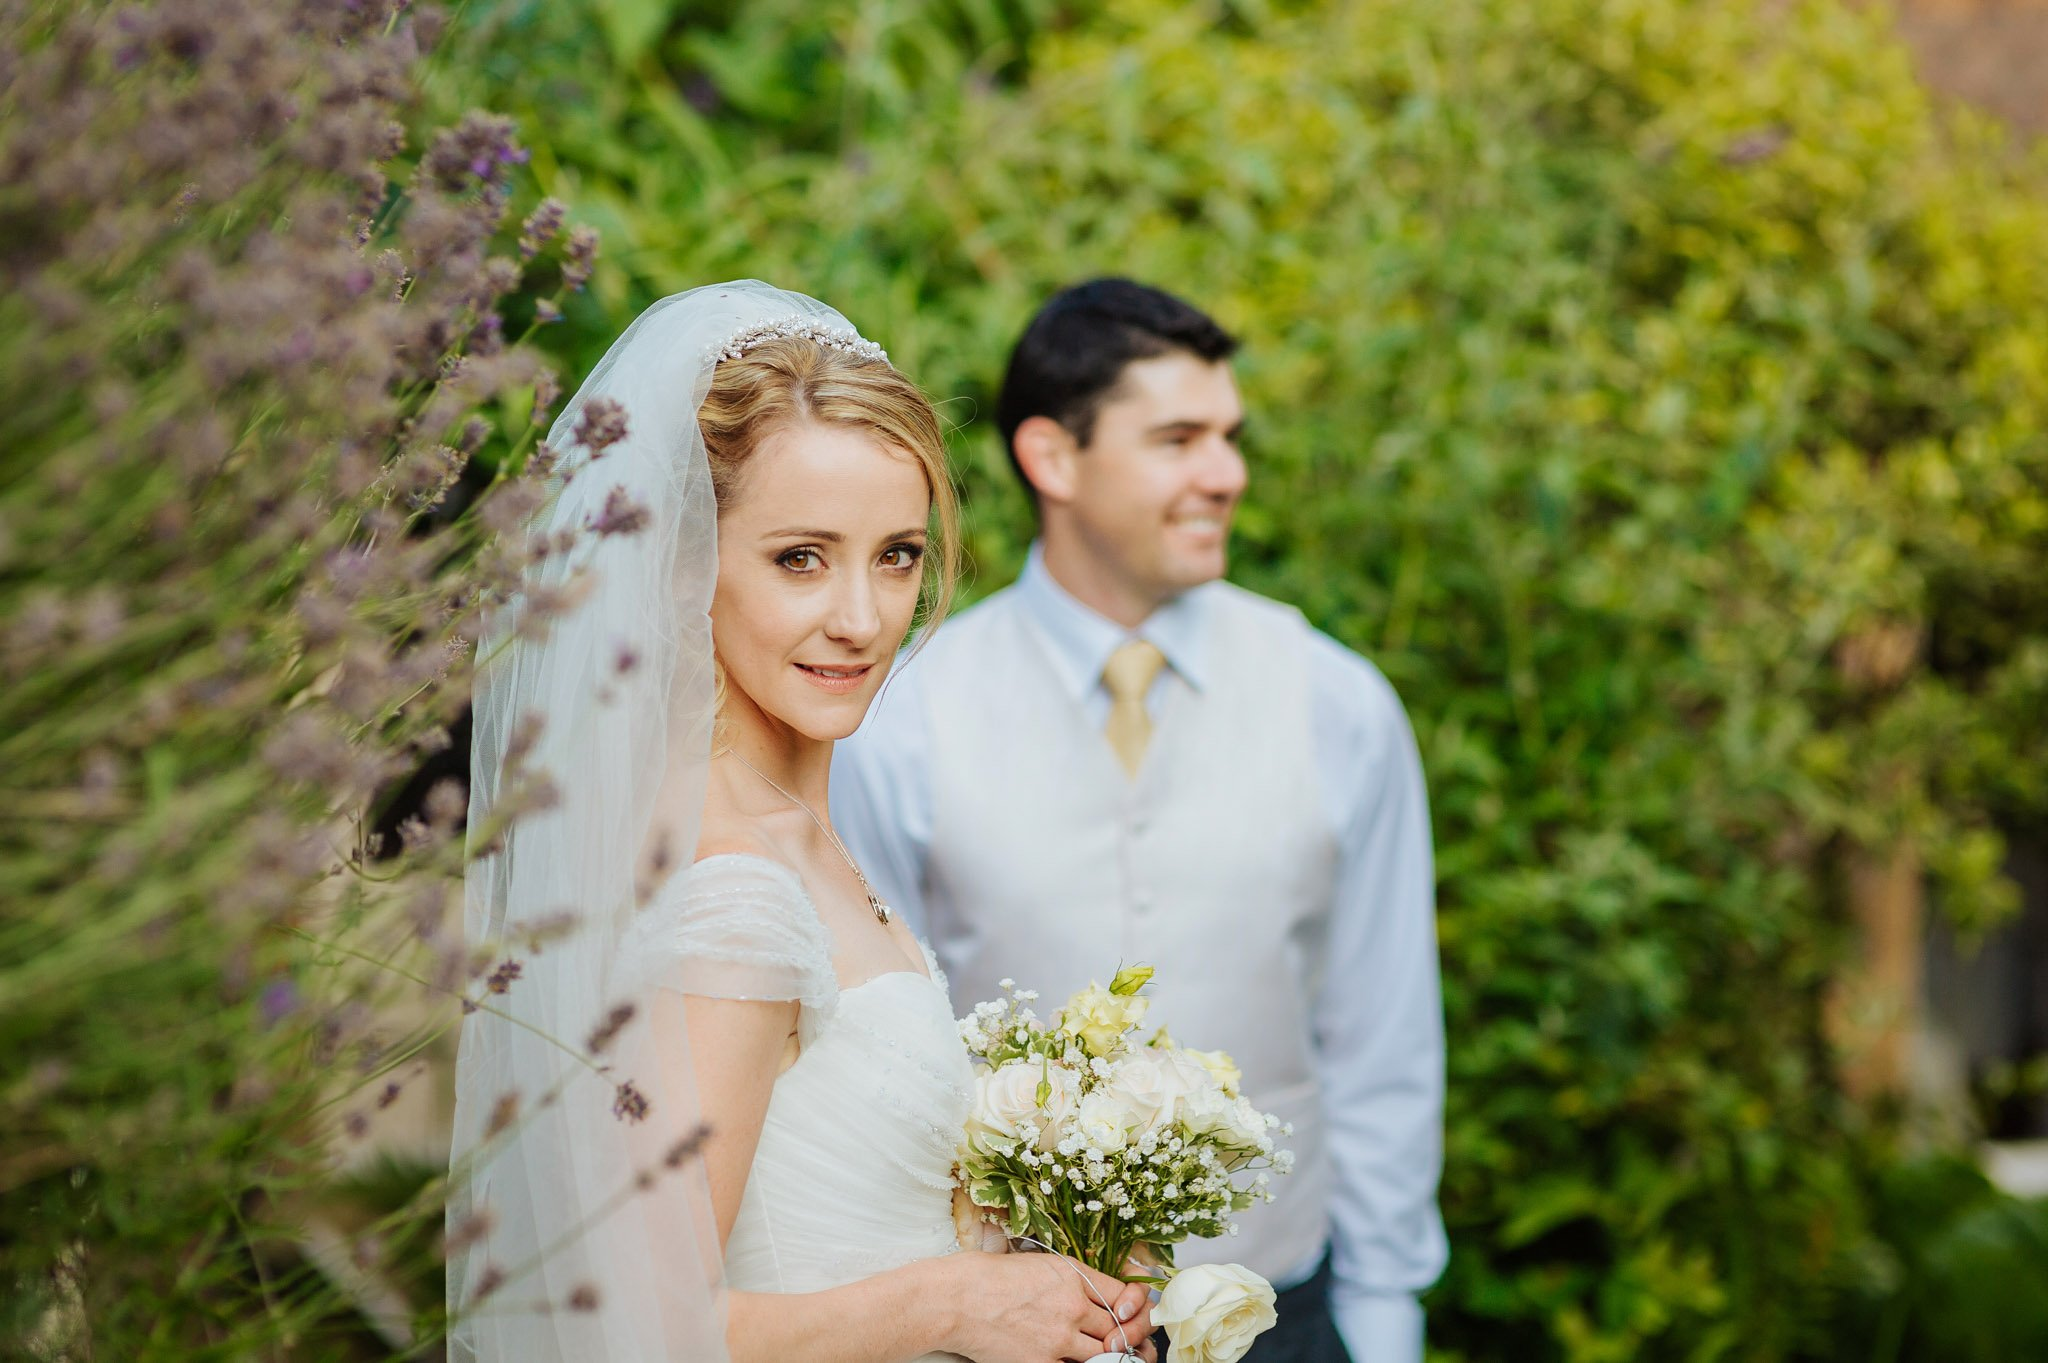 Georgina + Mike - Wedding photography in Malvern, Worcestershire 74